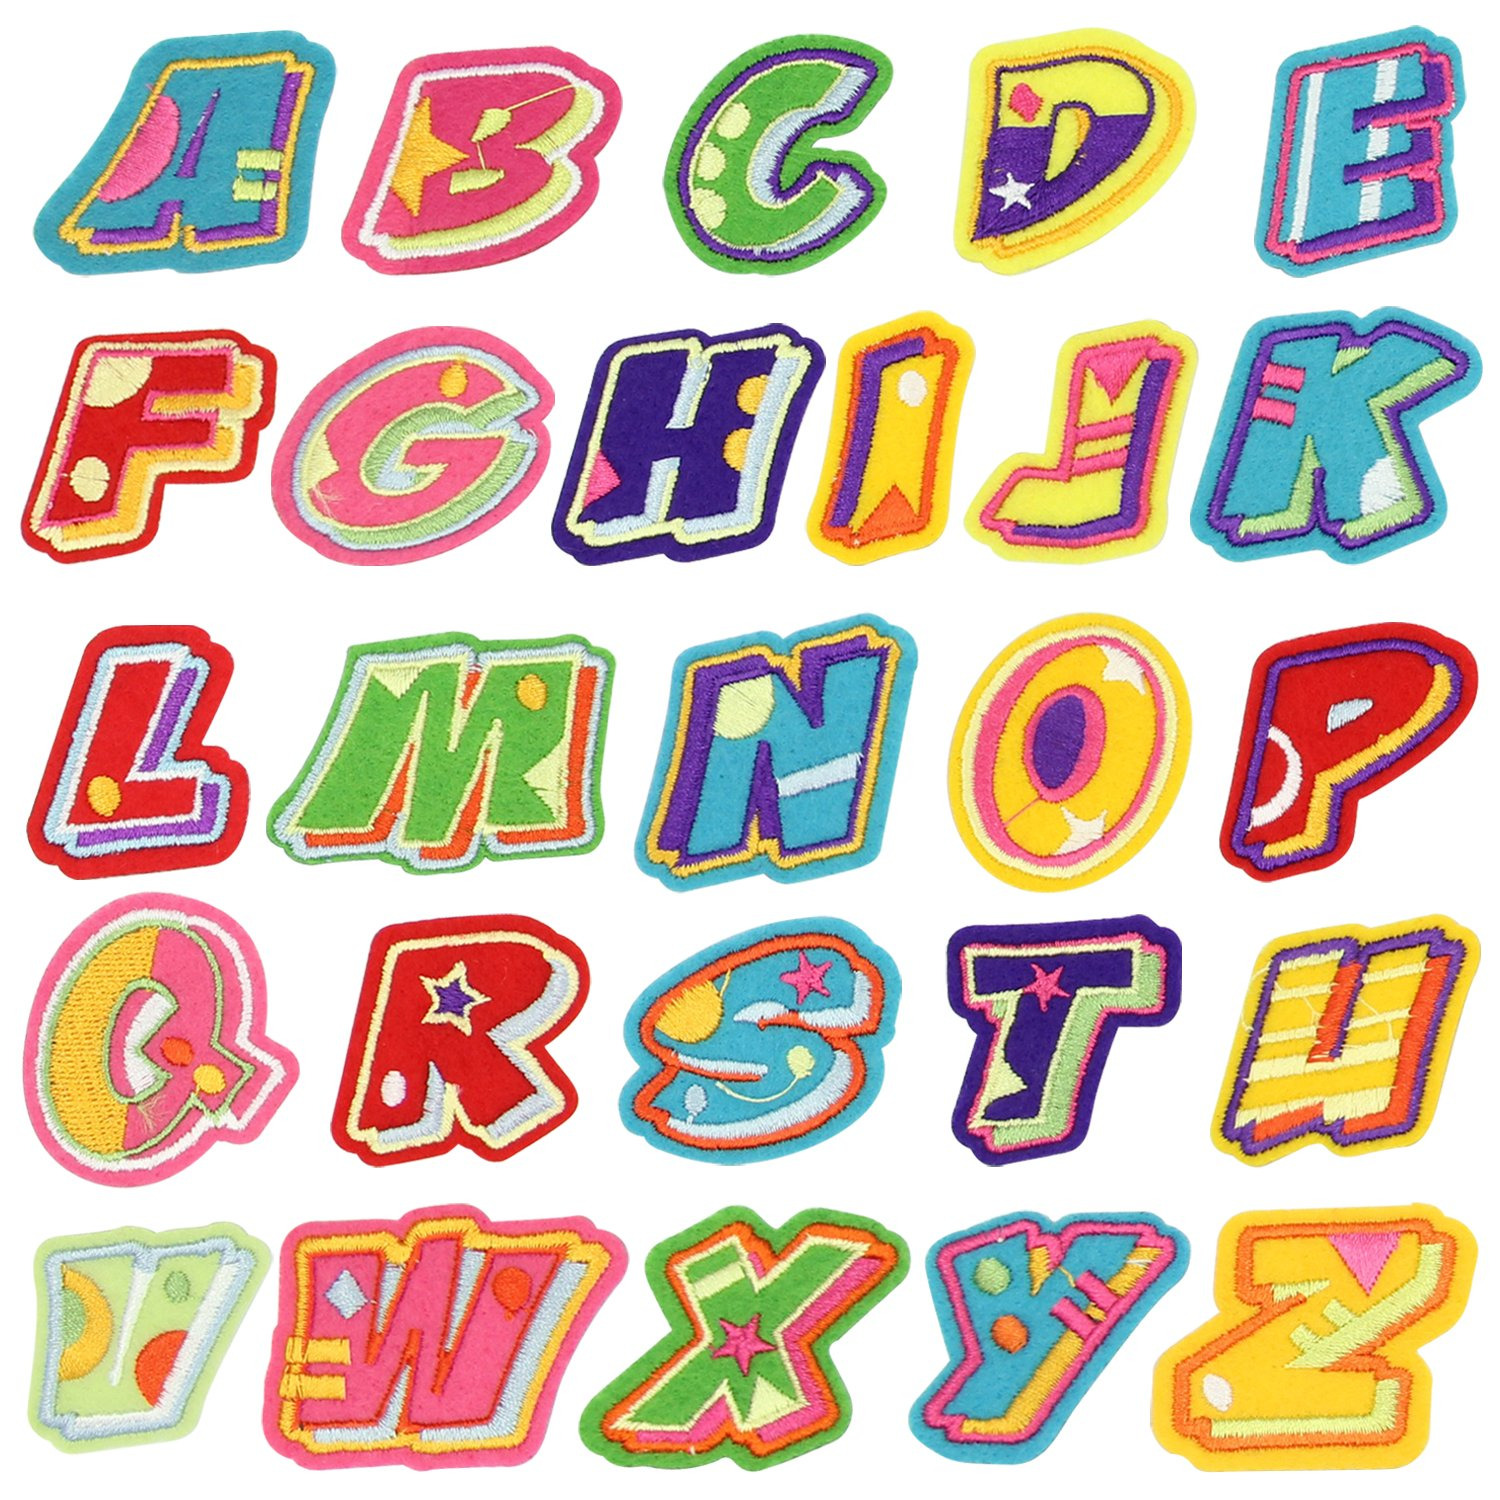 Name Iron on Patch, Satkago 26Pcs DIY Alphabet Letter Patches Embroidered  Patch Sew On Patches Applique for Clothes Jackets T-Shirt Jeans Skirt Vests